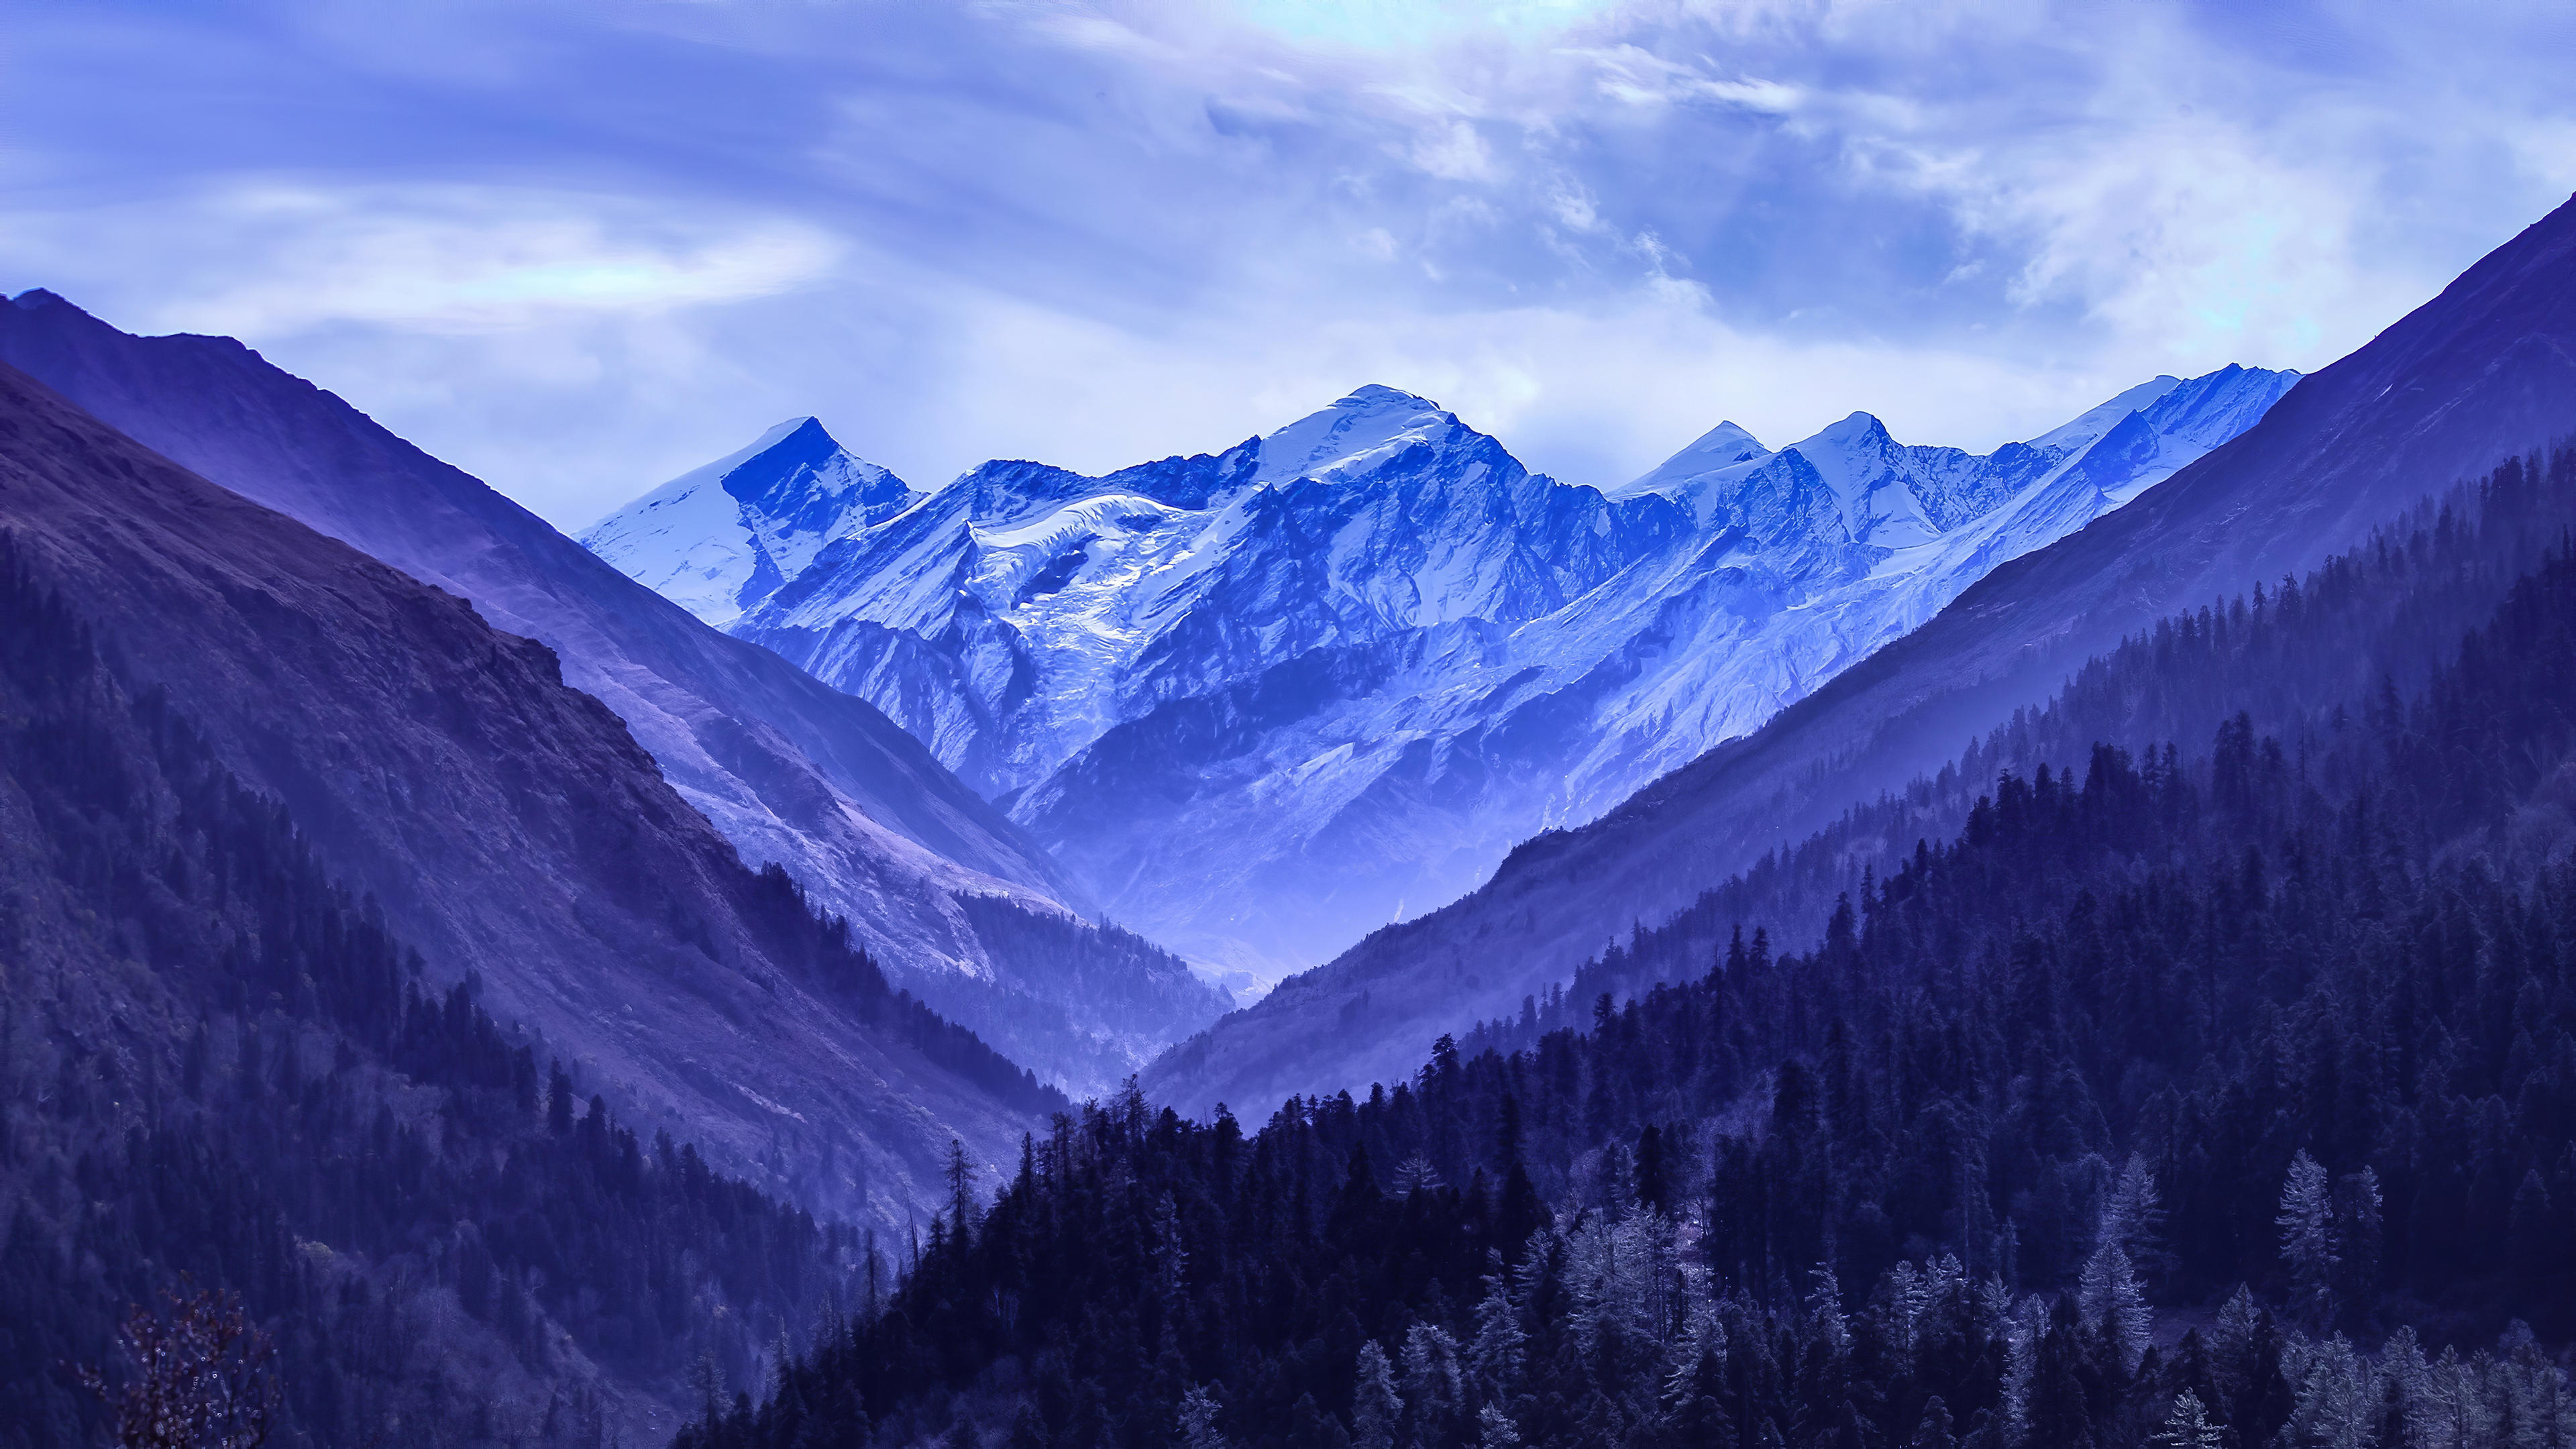 Mountain 4k Ultra Hd Wallpaper Background Image 3840x2160 Id